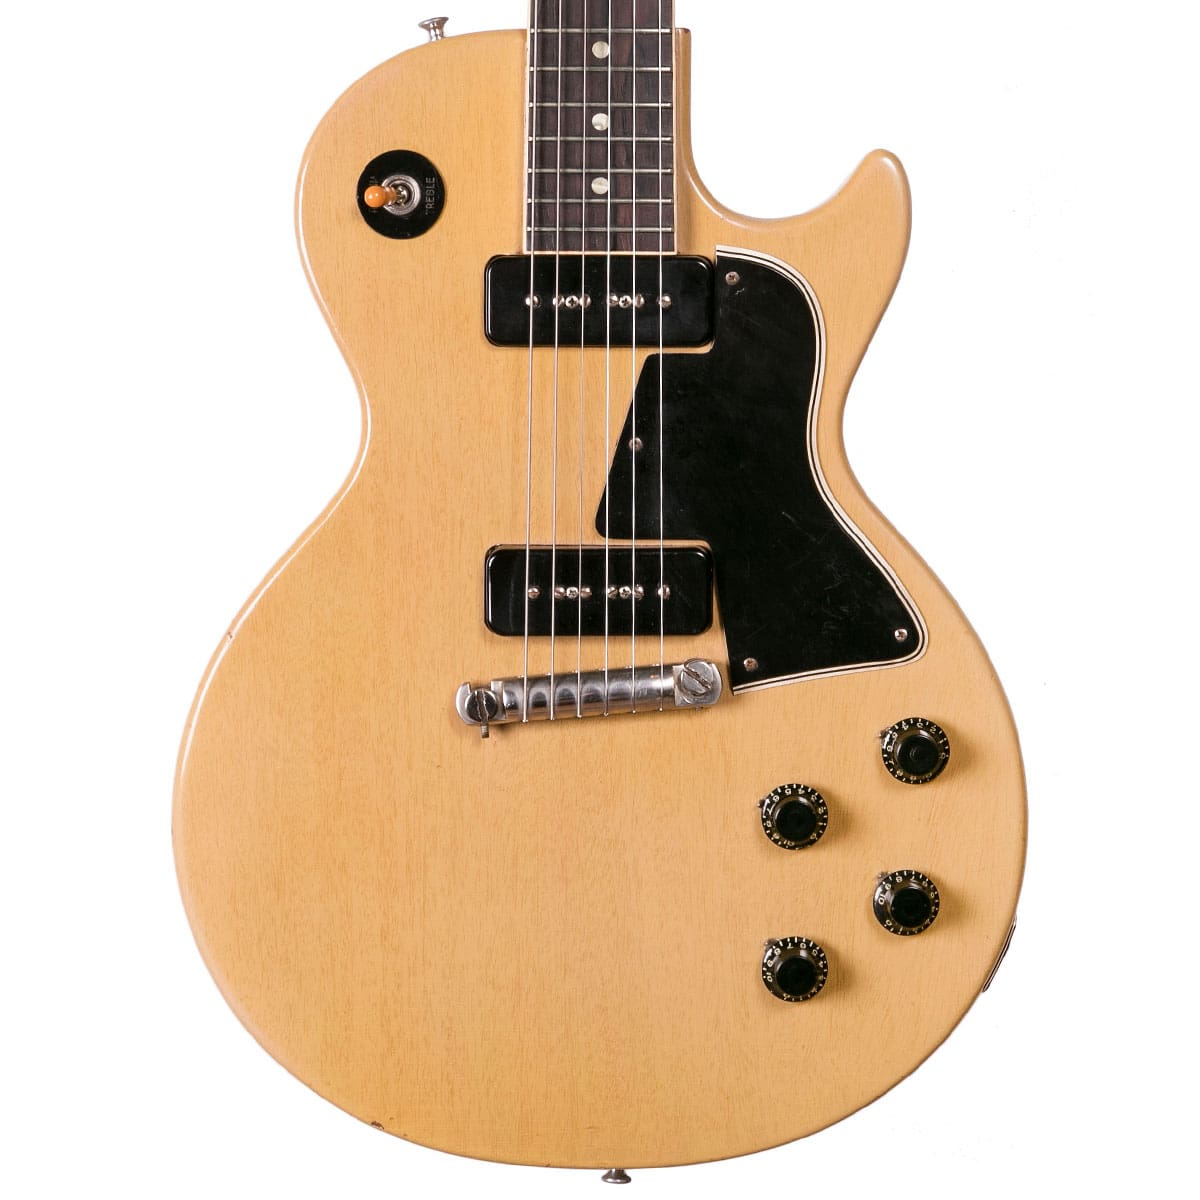 1957 gibson les paul tv special tv yellow reverb. Black Bedroom Furniture Sets. Home Design Ideas